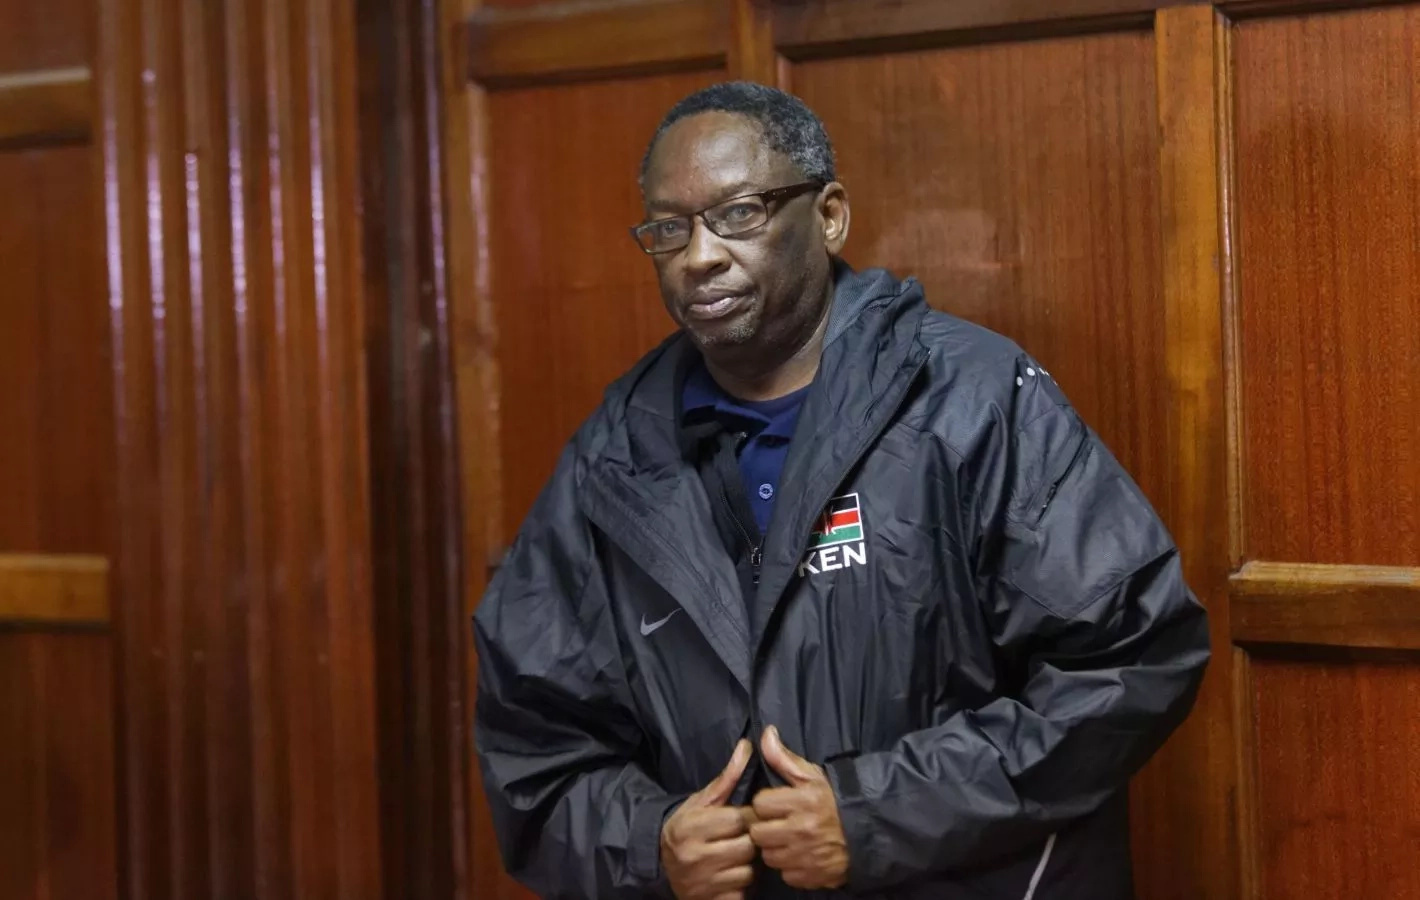 Ben Akumbo appears in court dressed in clothes that he was accused of stealing